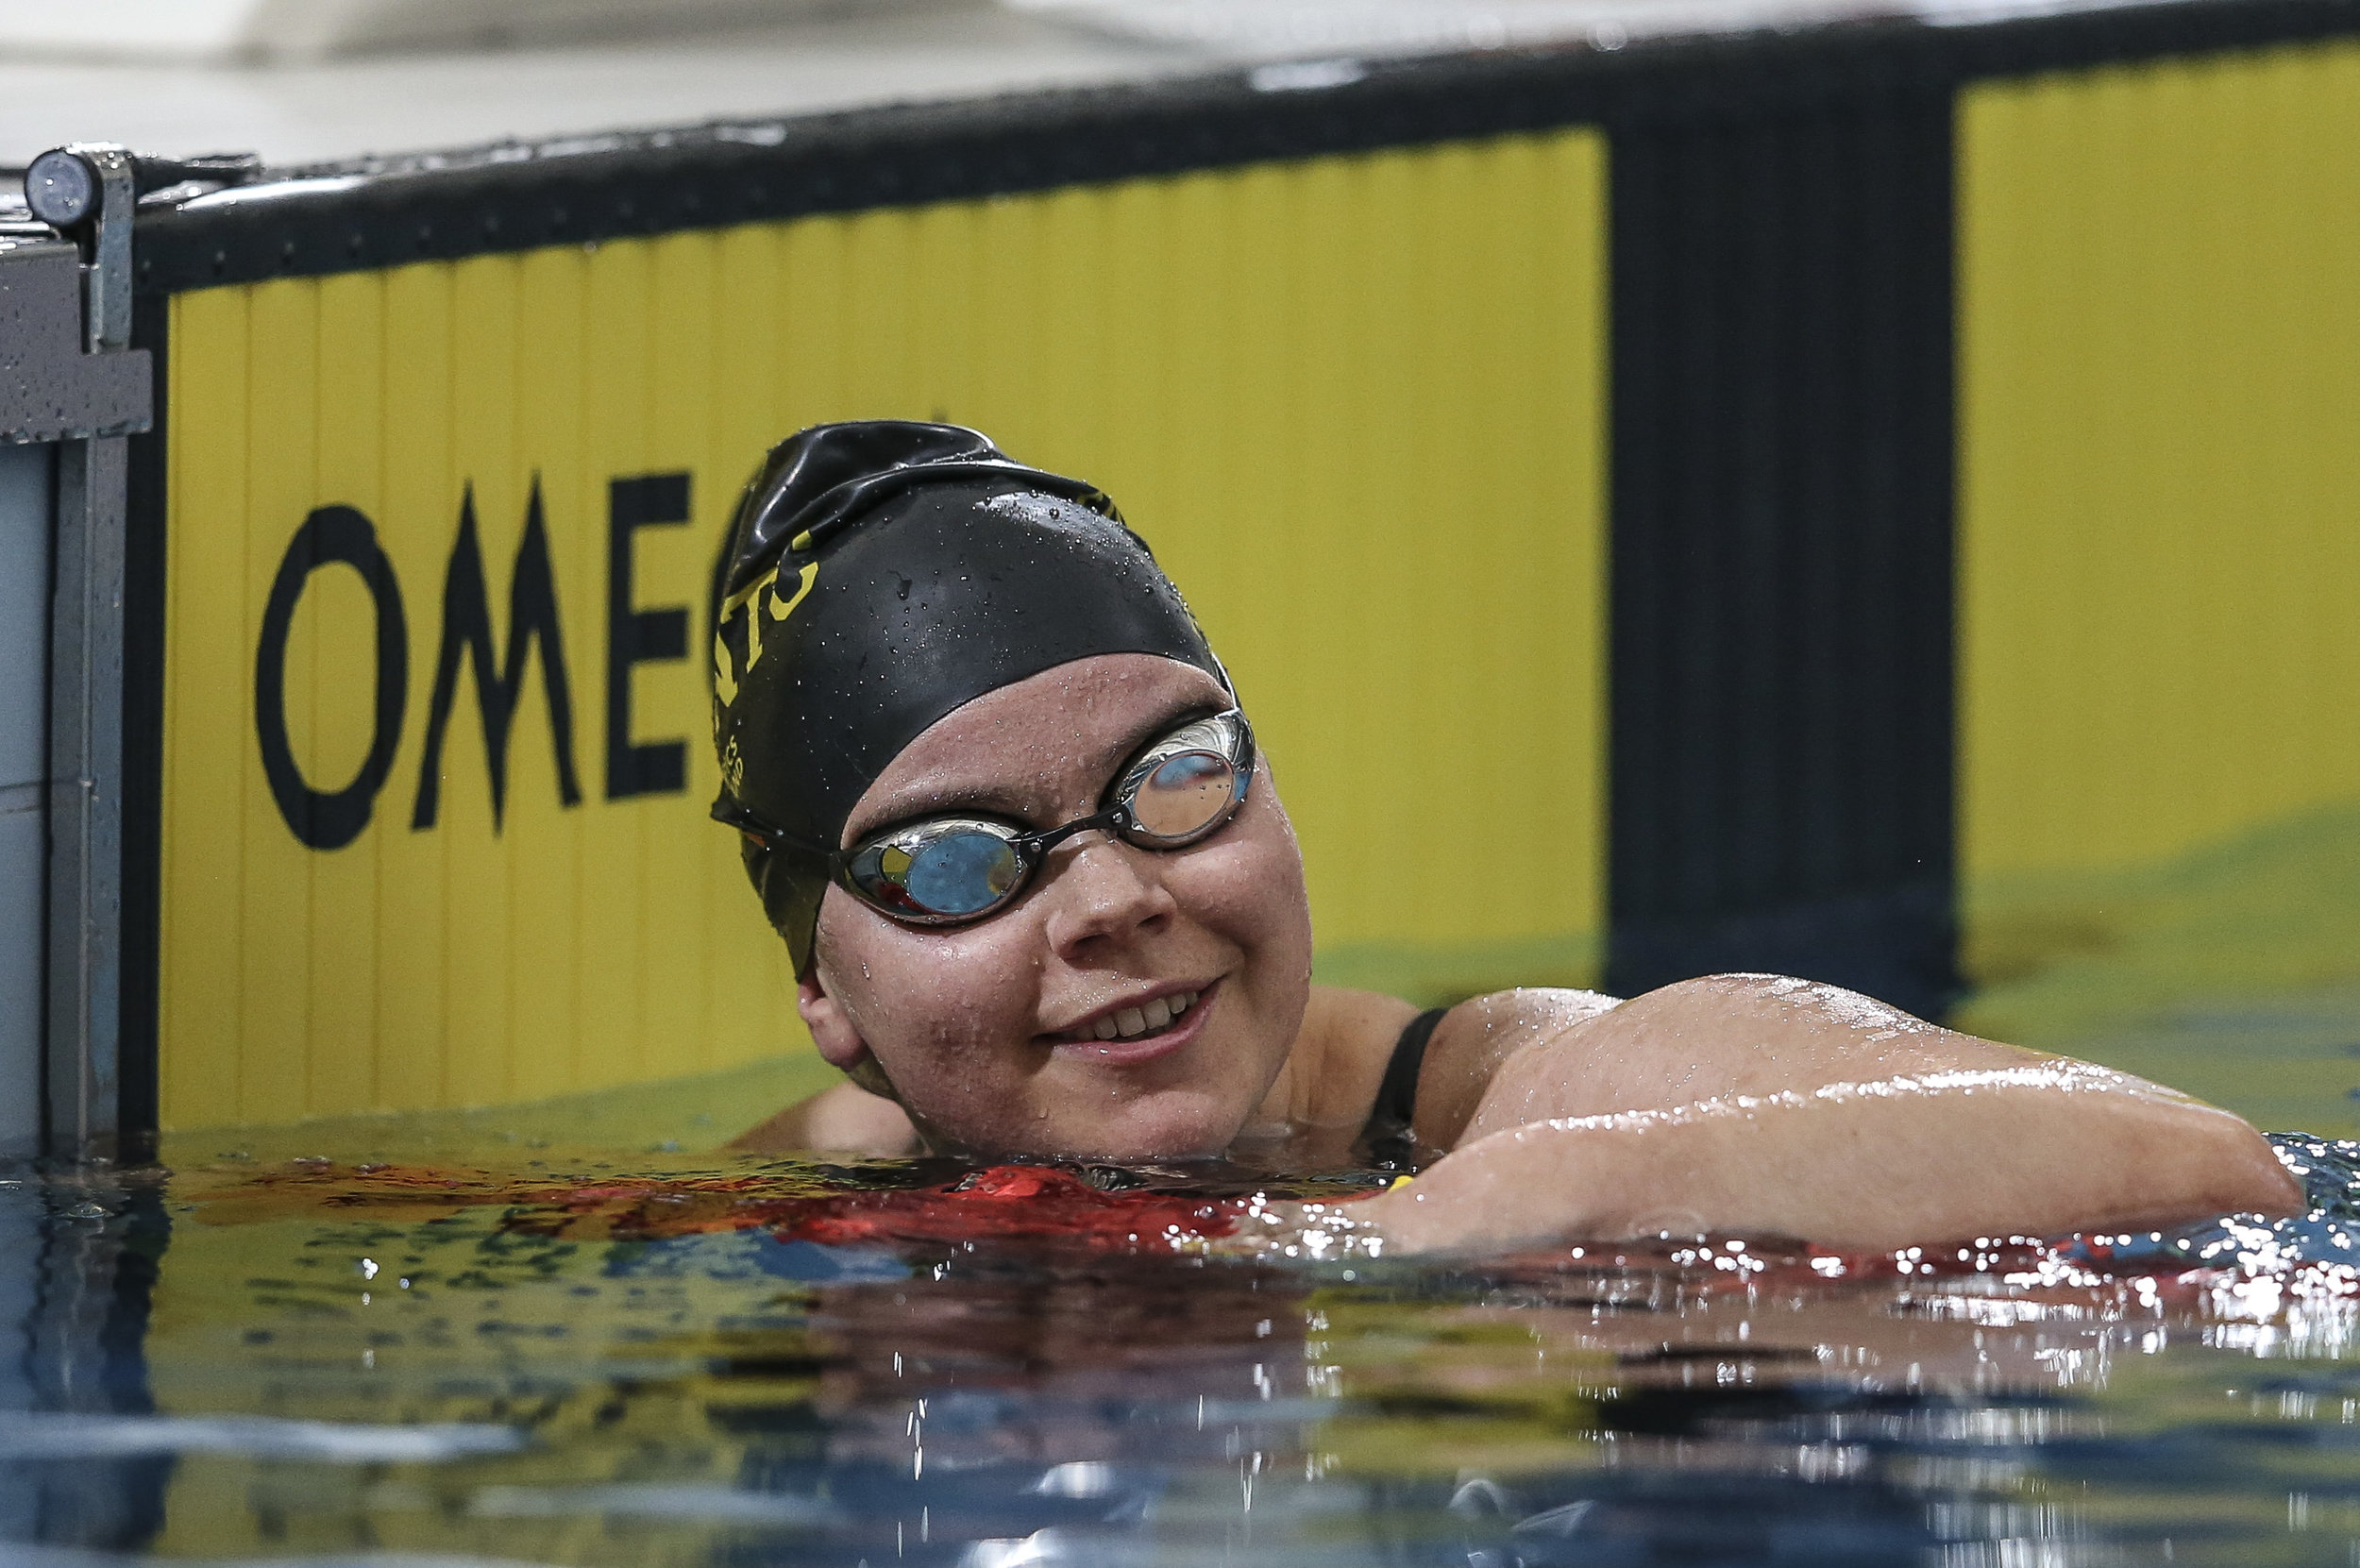 Paralympian Mary Fisher smiling in pool after finishing race